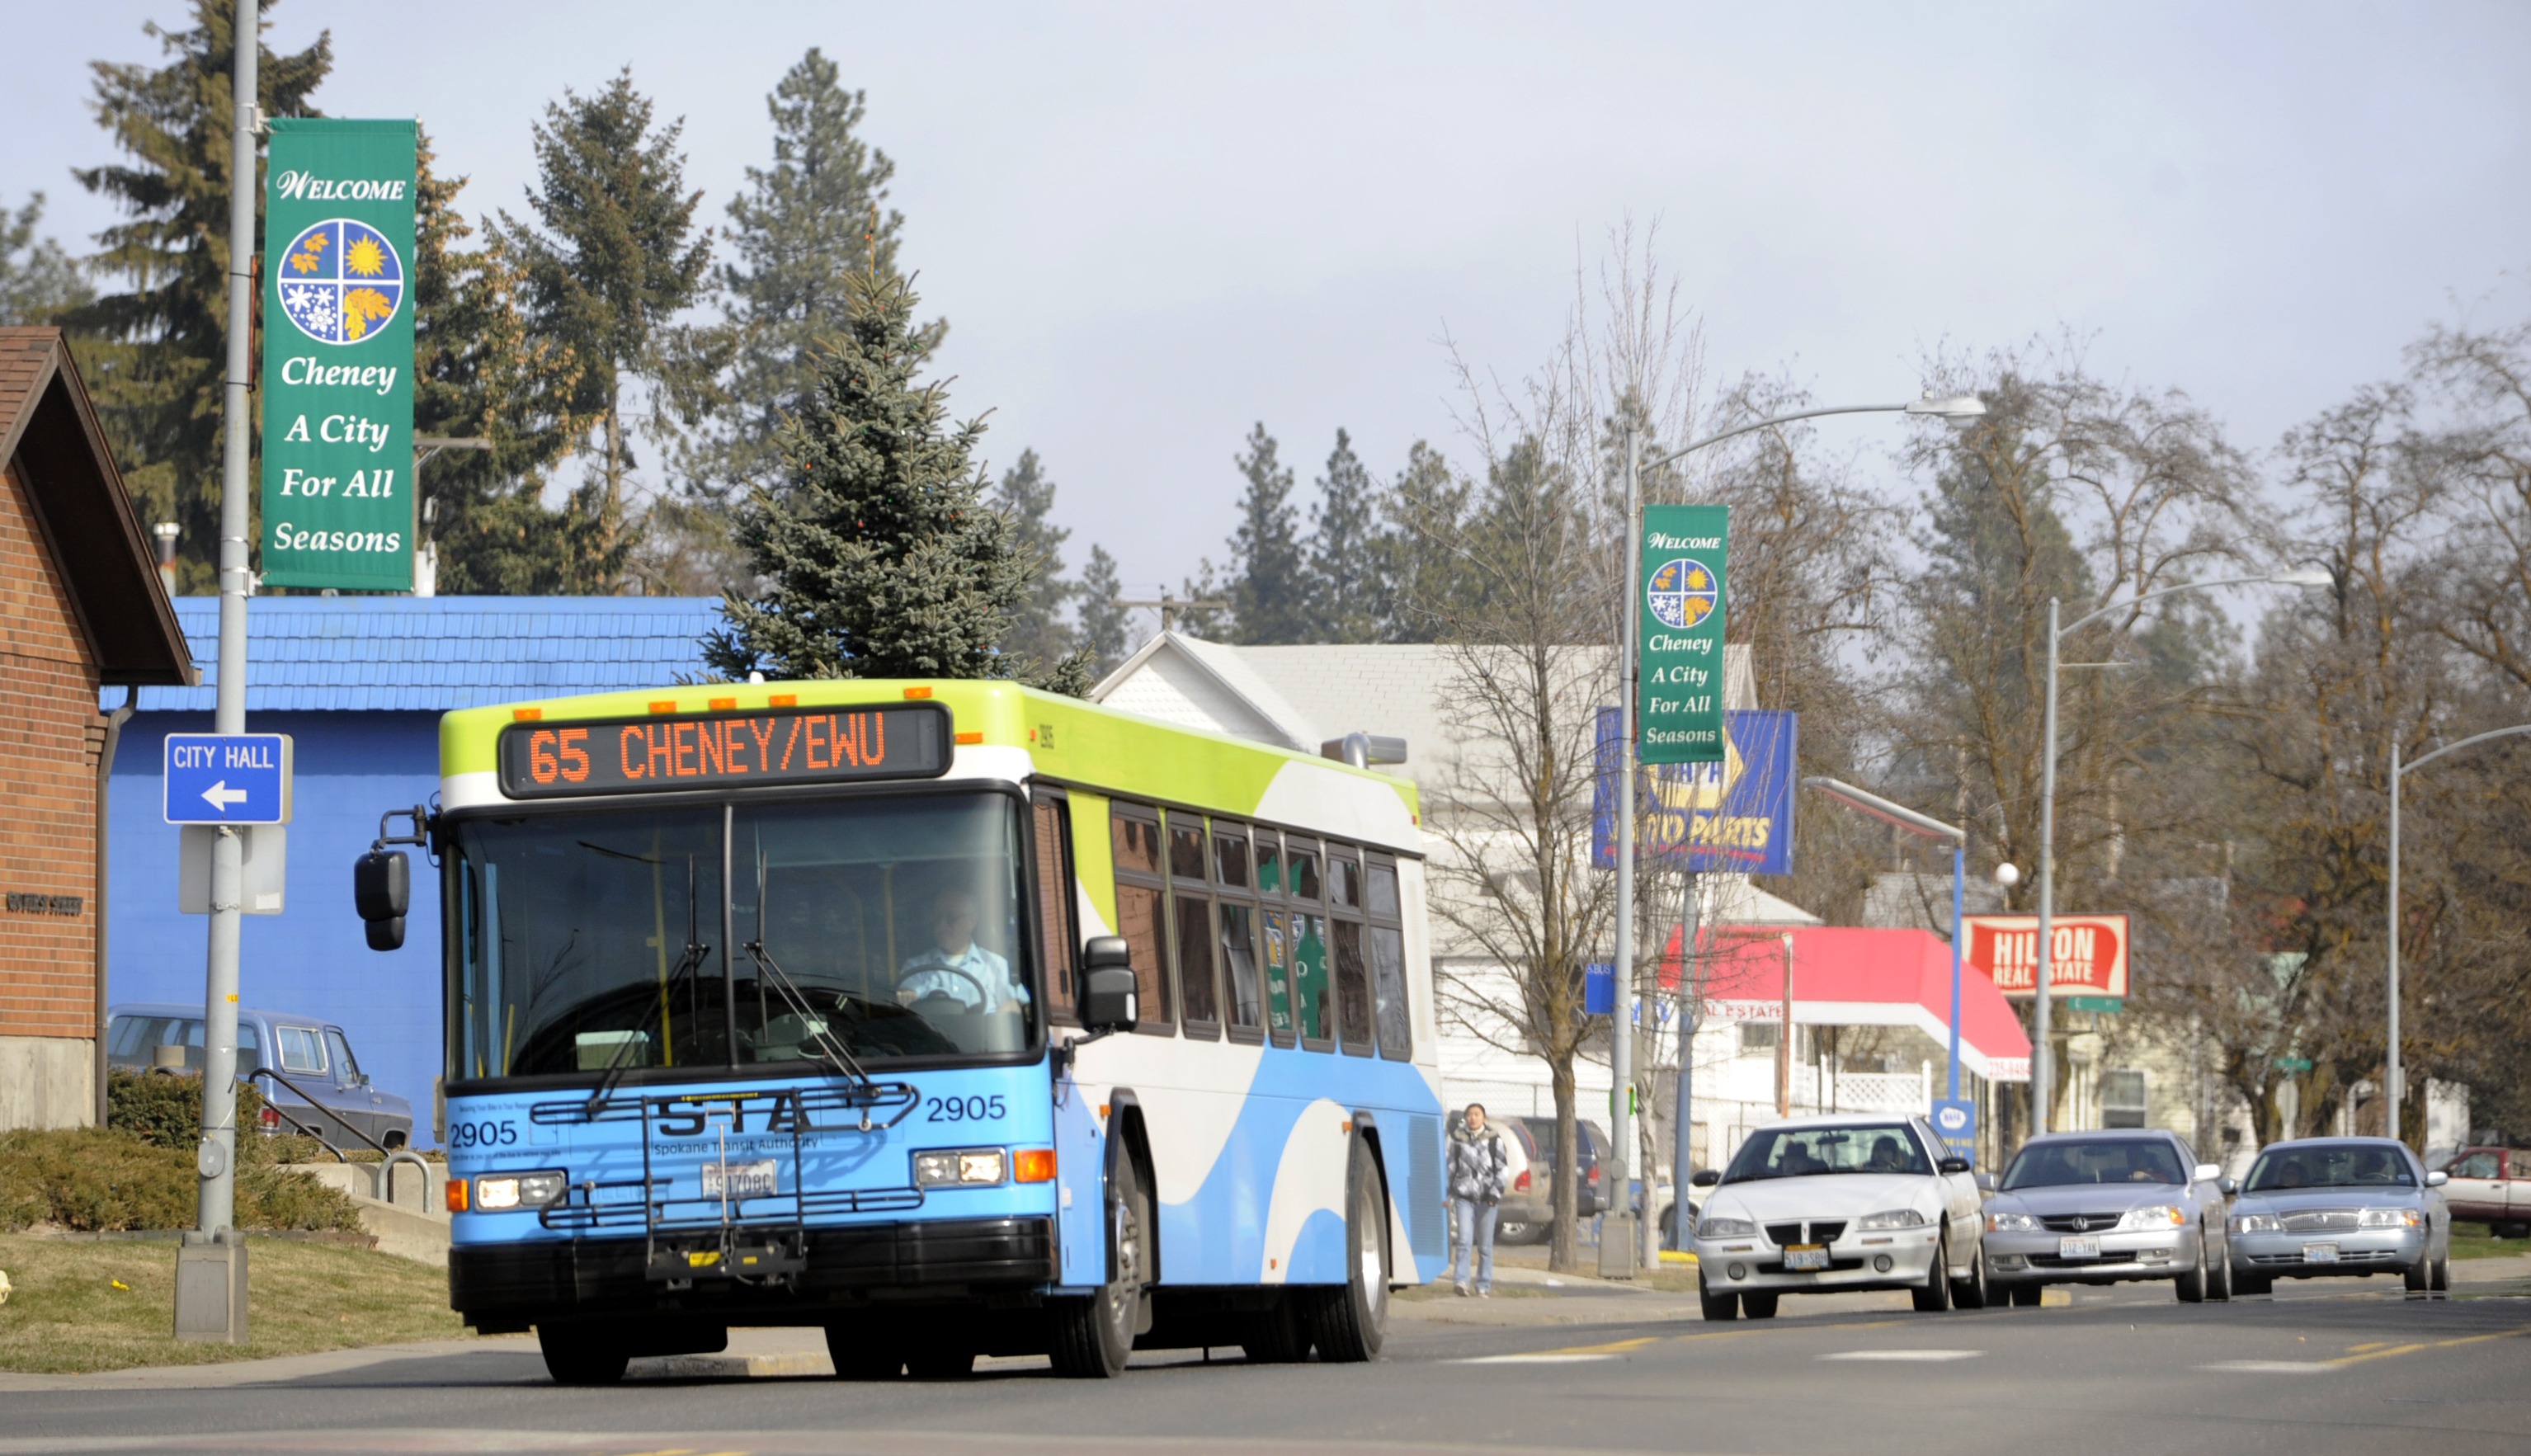 sta proposes 'modest' route reductions | the spokesman-review